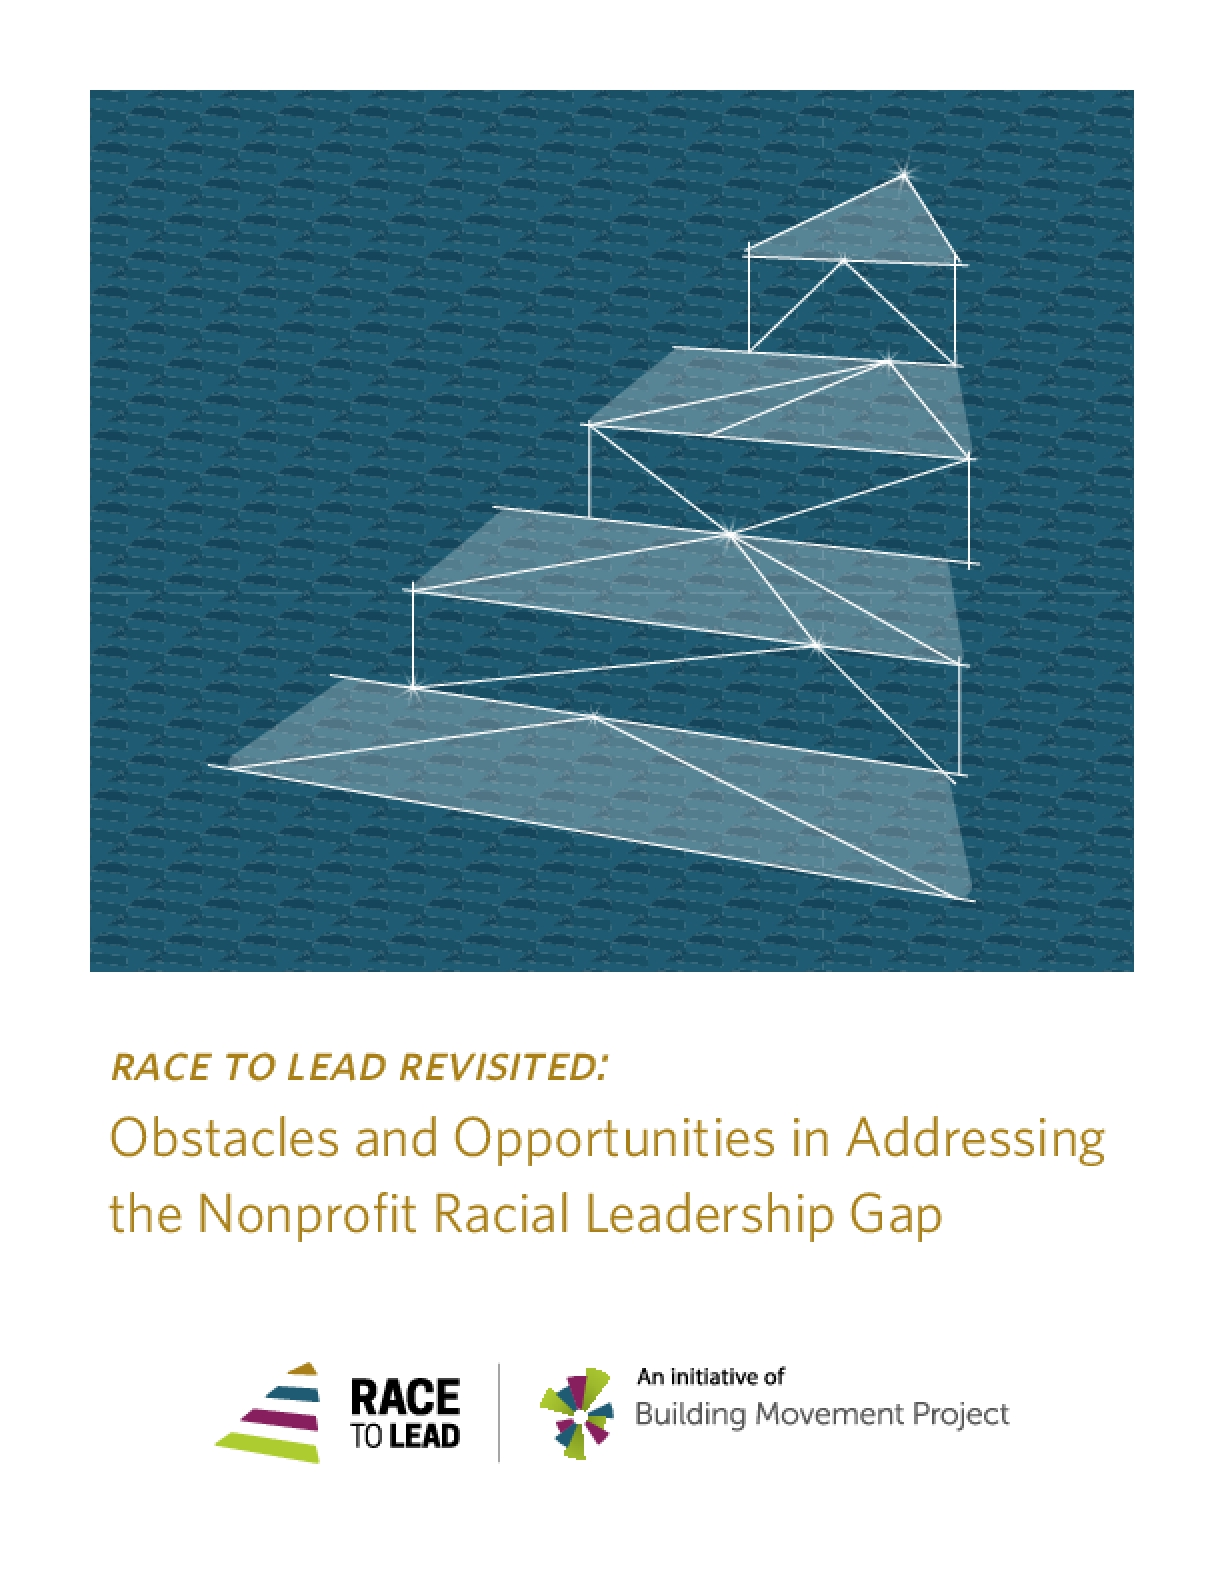 Race to Lead Revisited: Obstacles and Opportunities in Addressing the Nonprofit Racial Leadership Gap